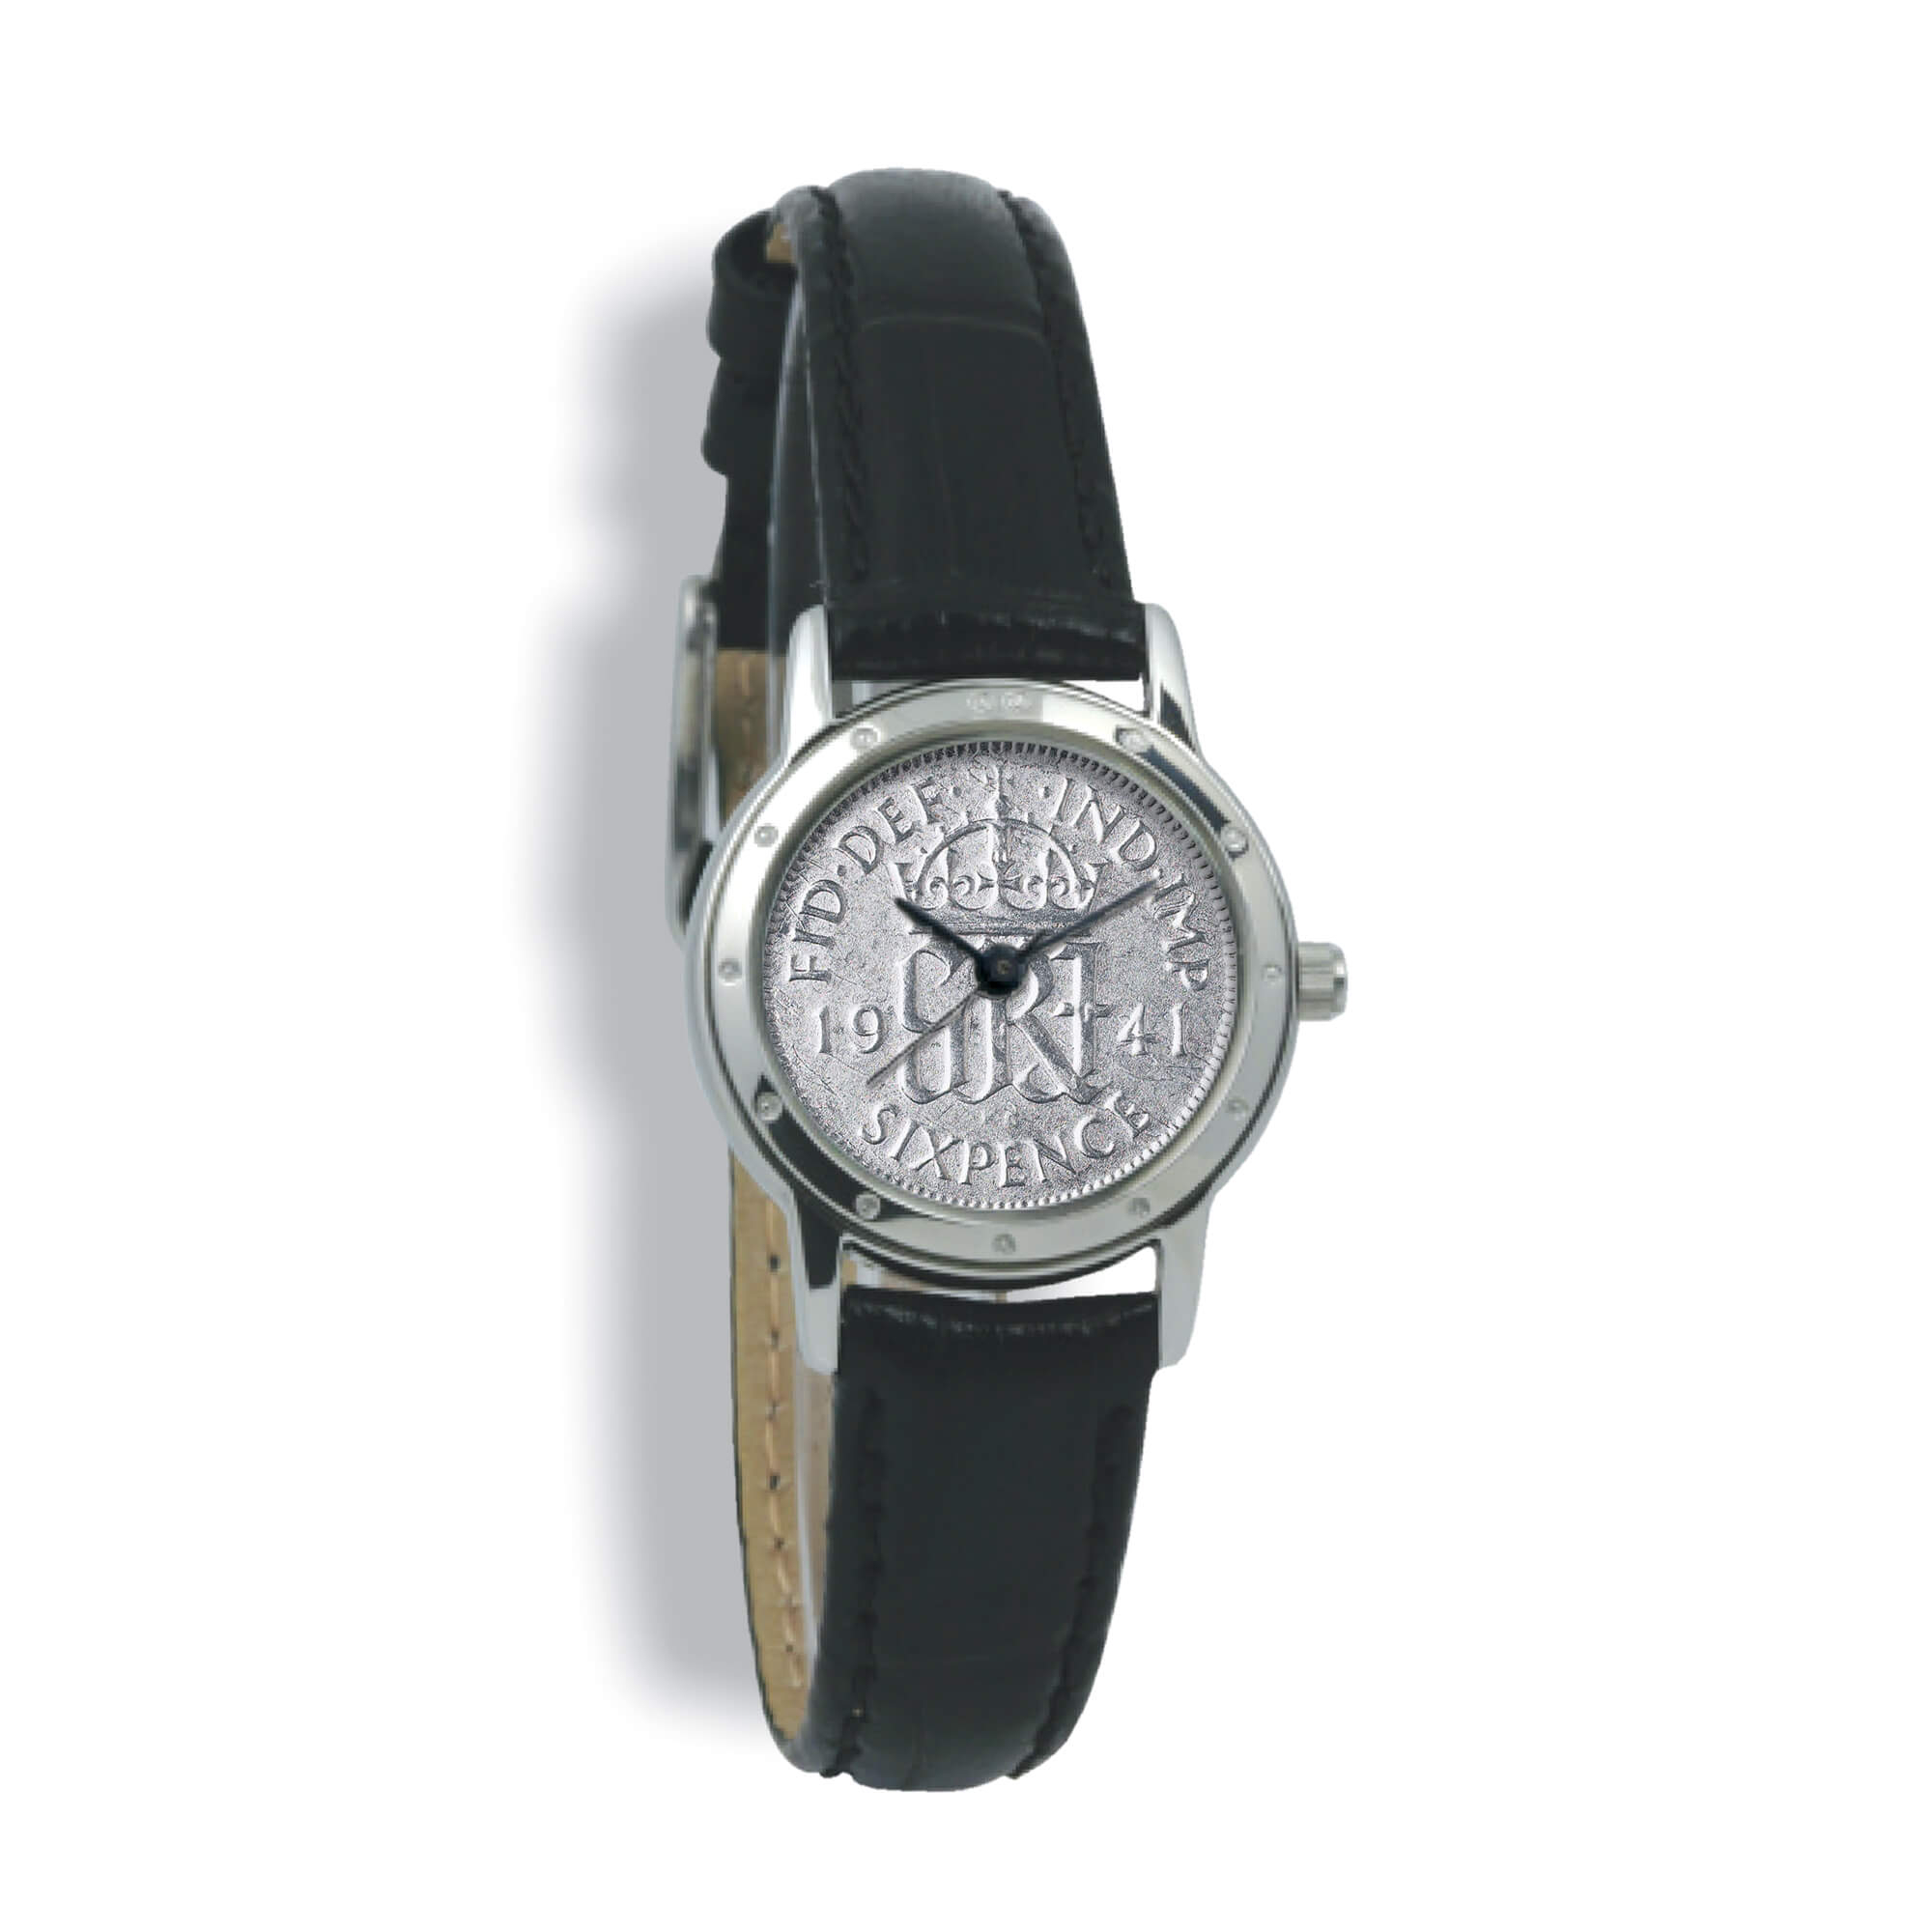 57f88bbea4e A beautifully designed watch with a Swiss movement